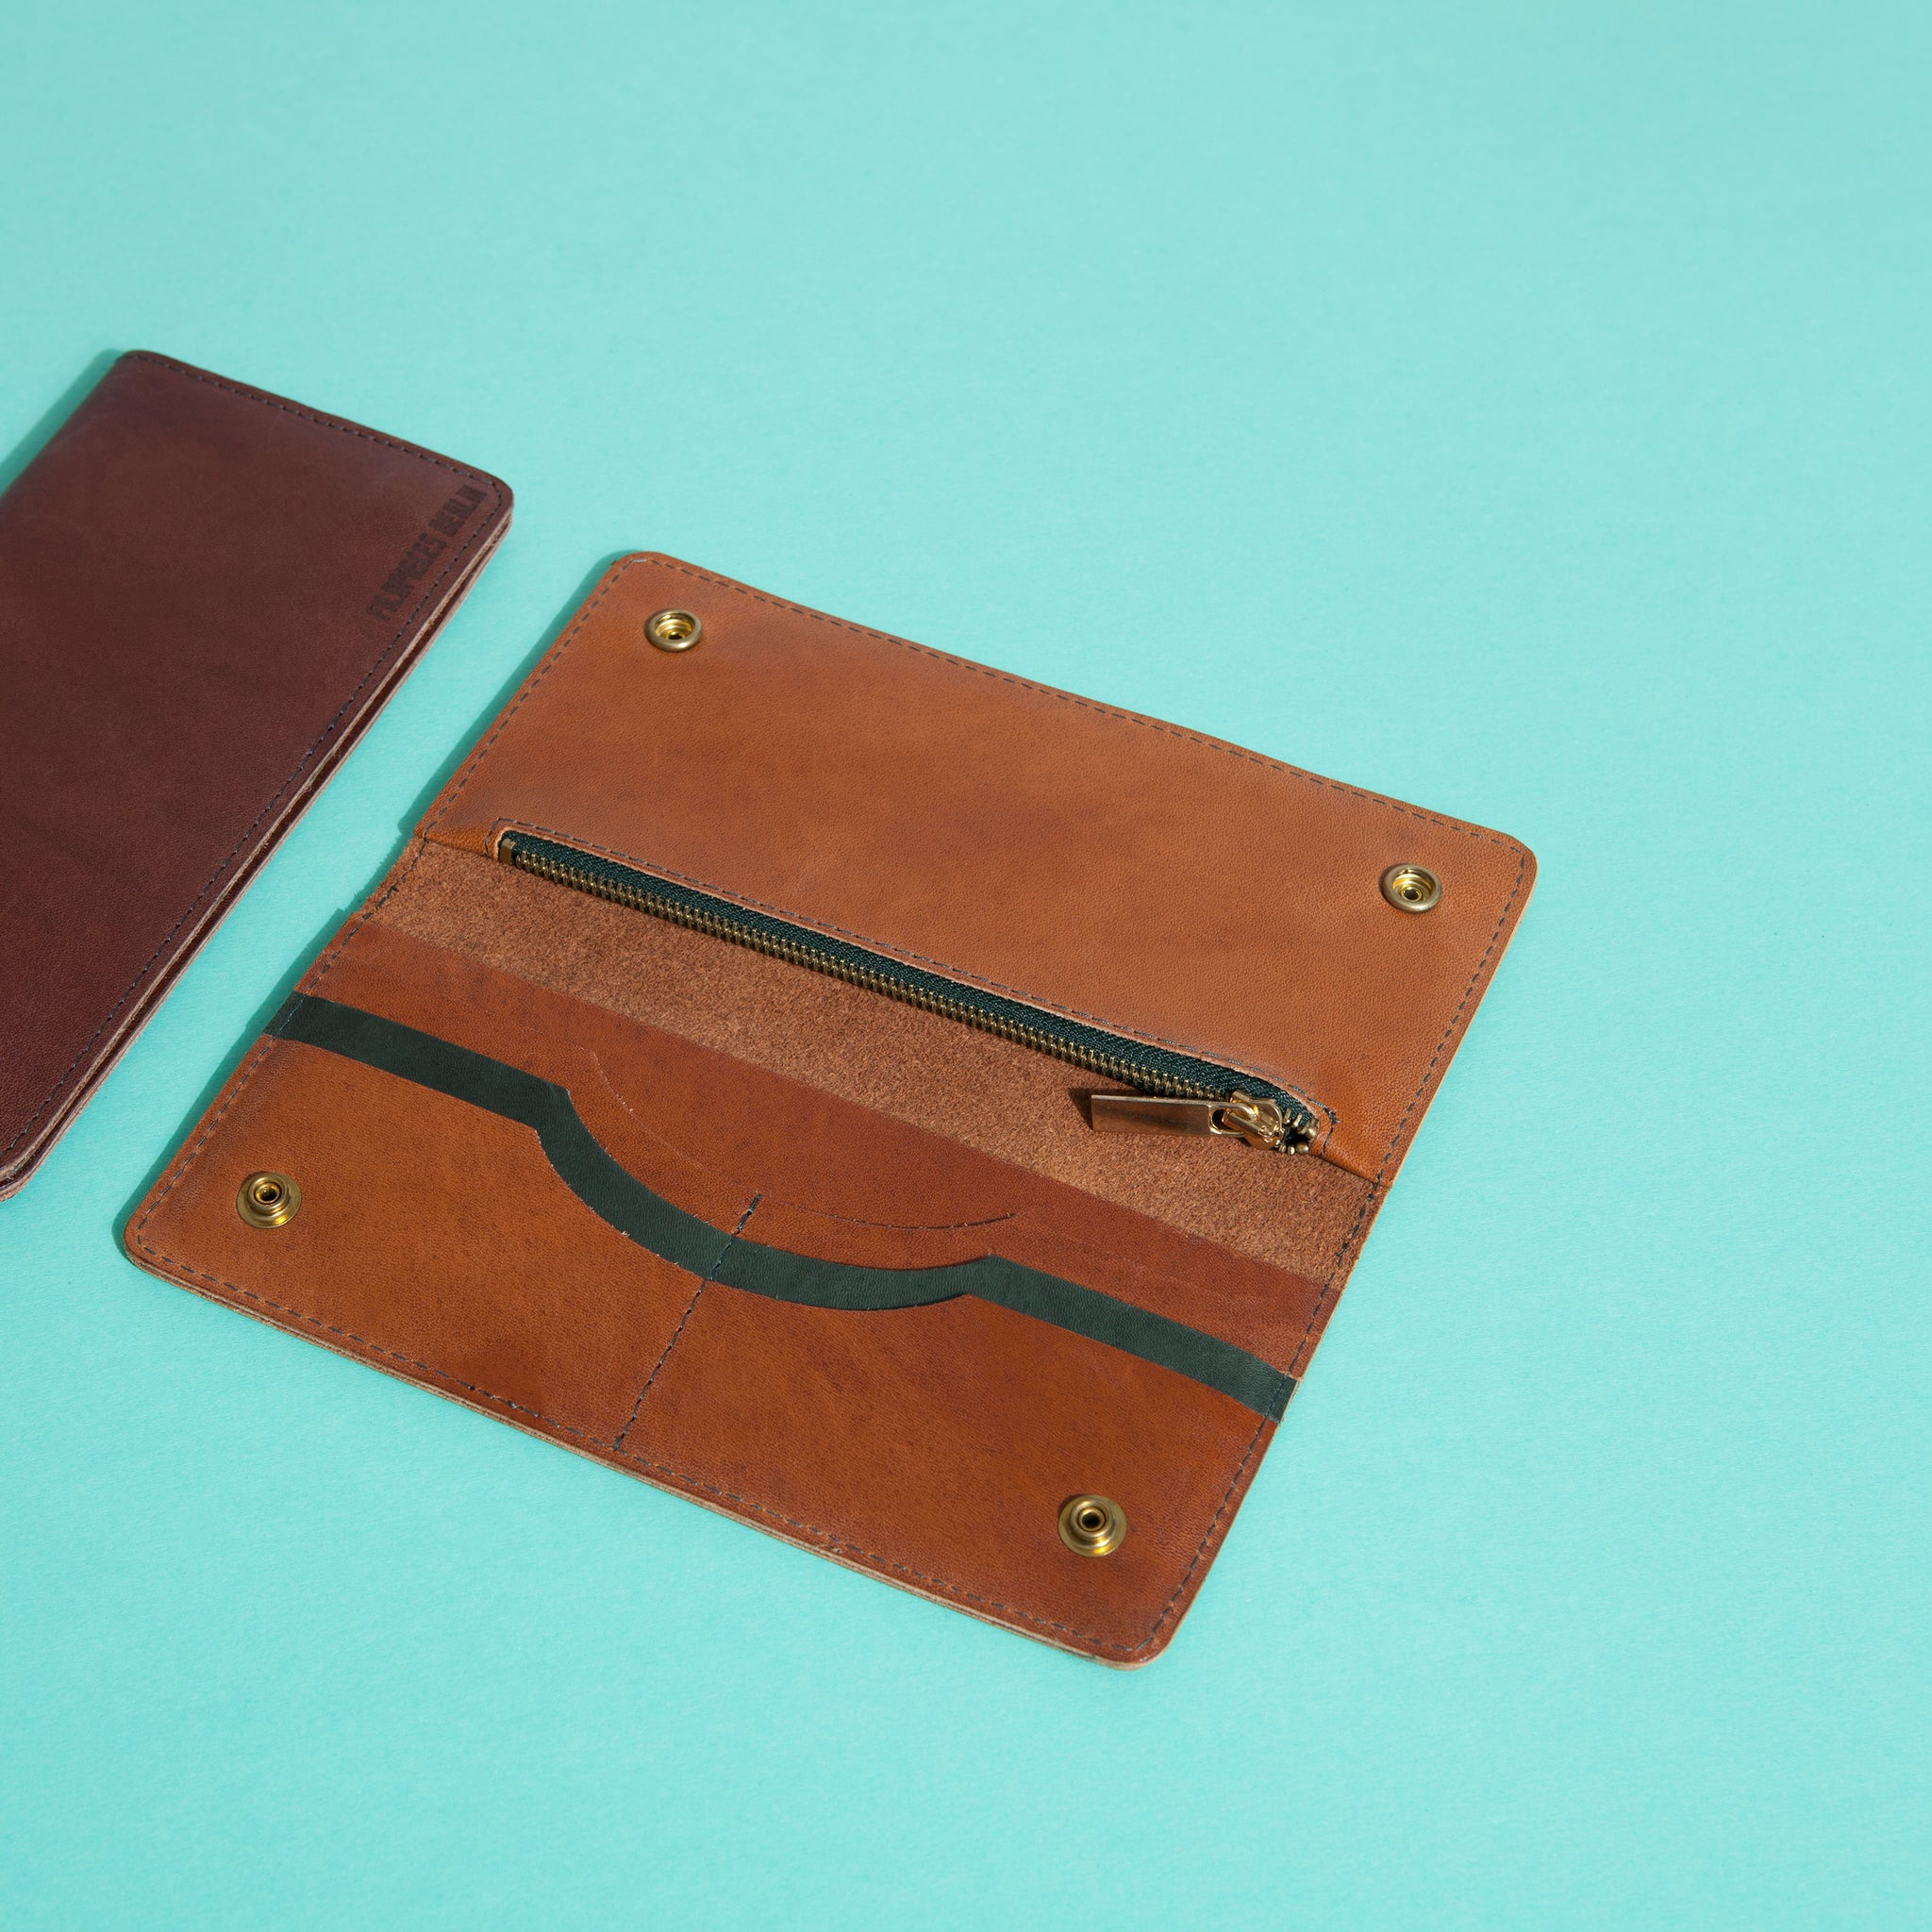 Nahid wallet brown leather craftsmanship